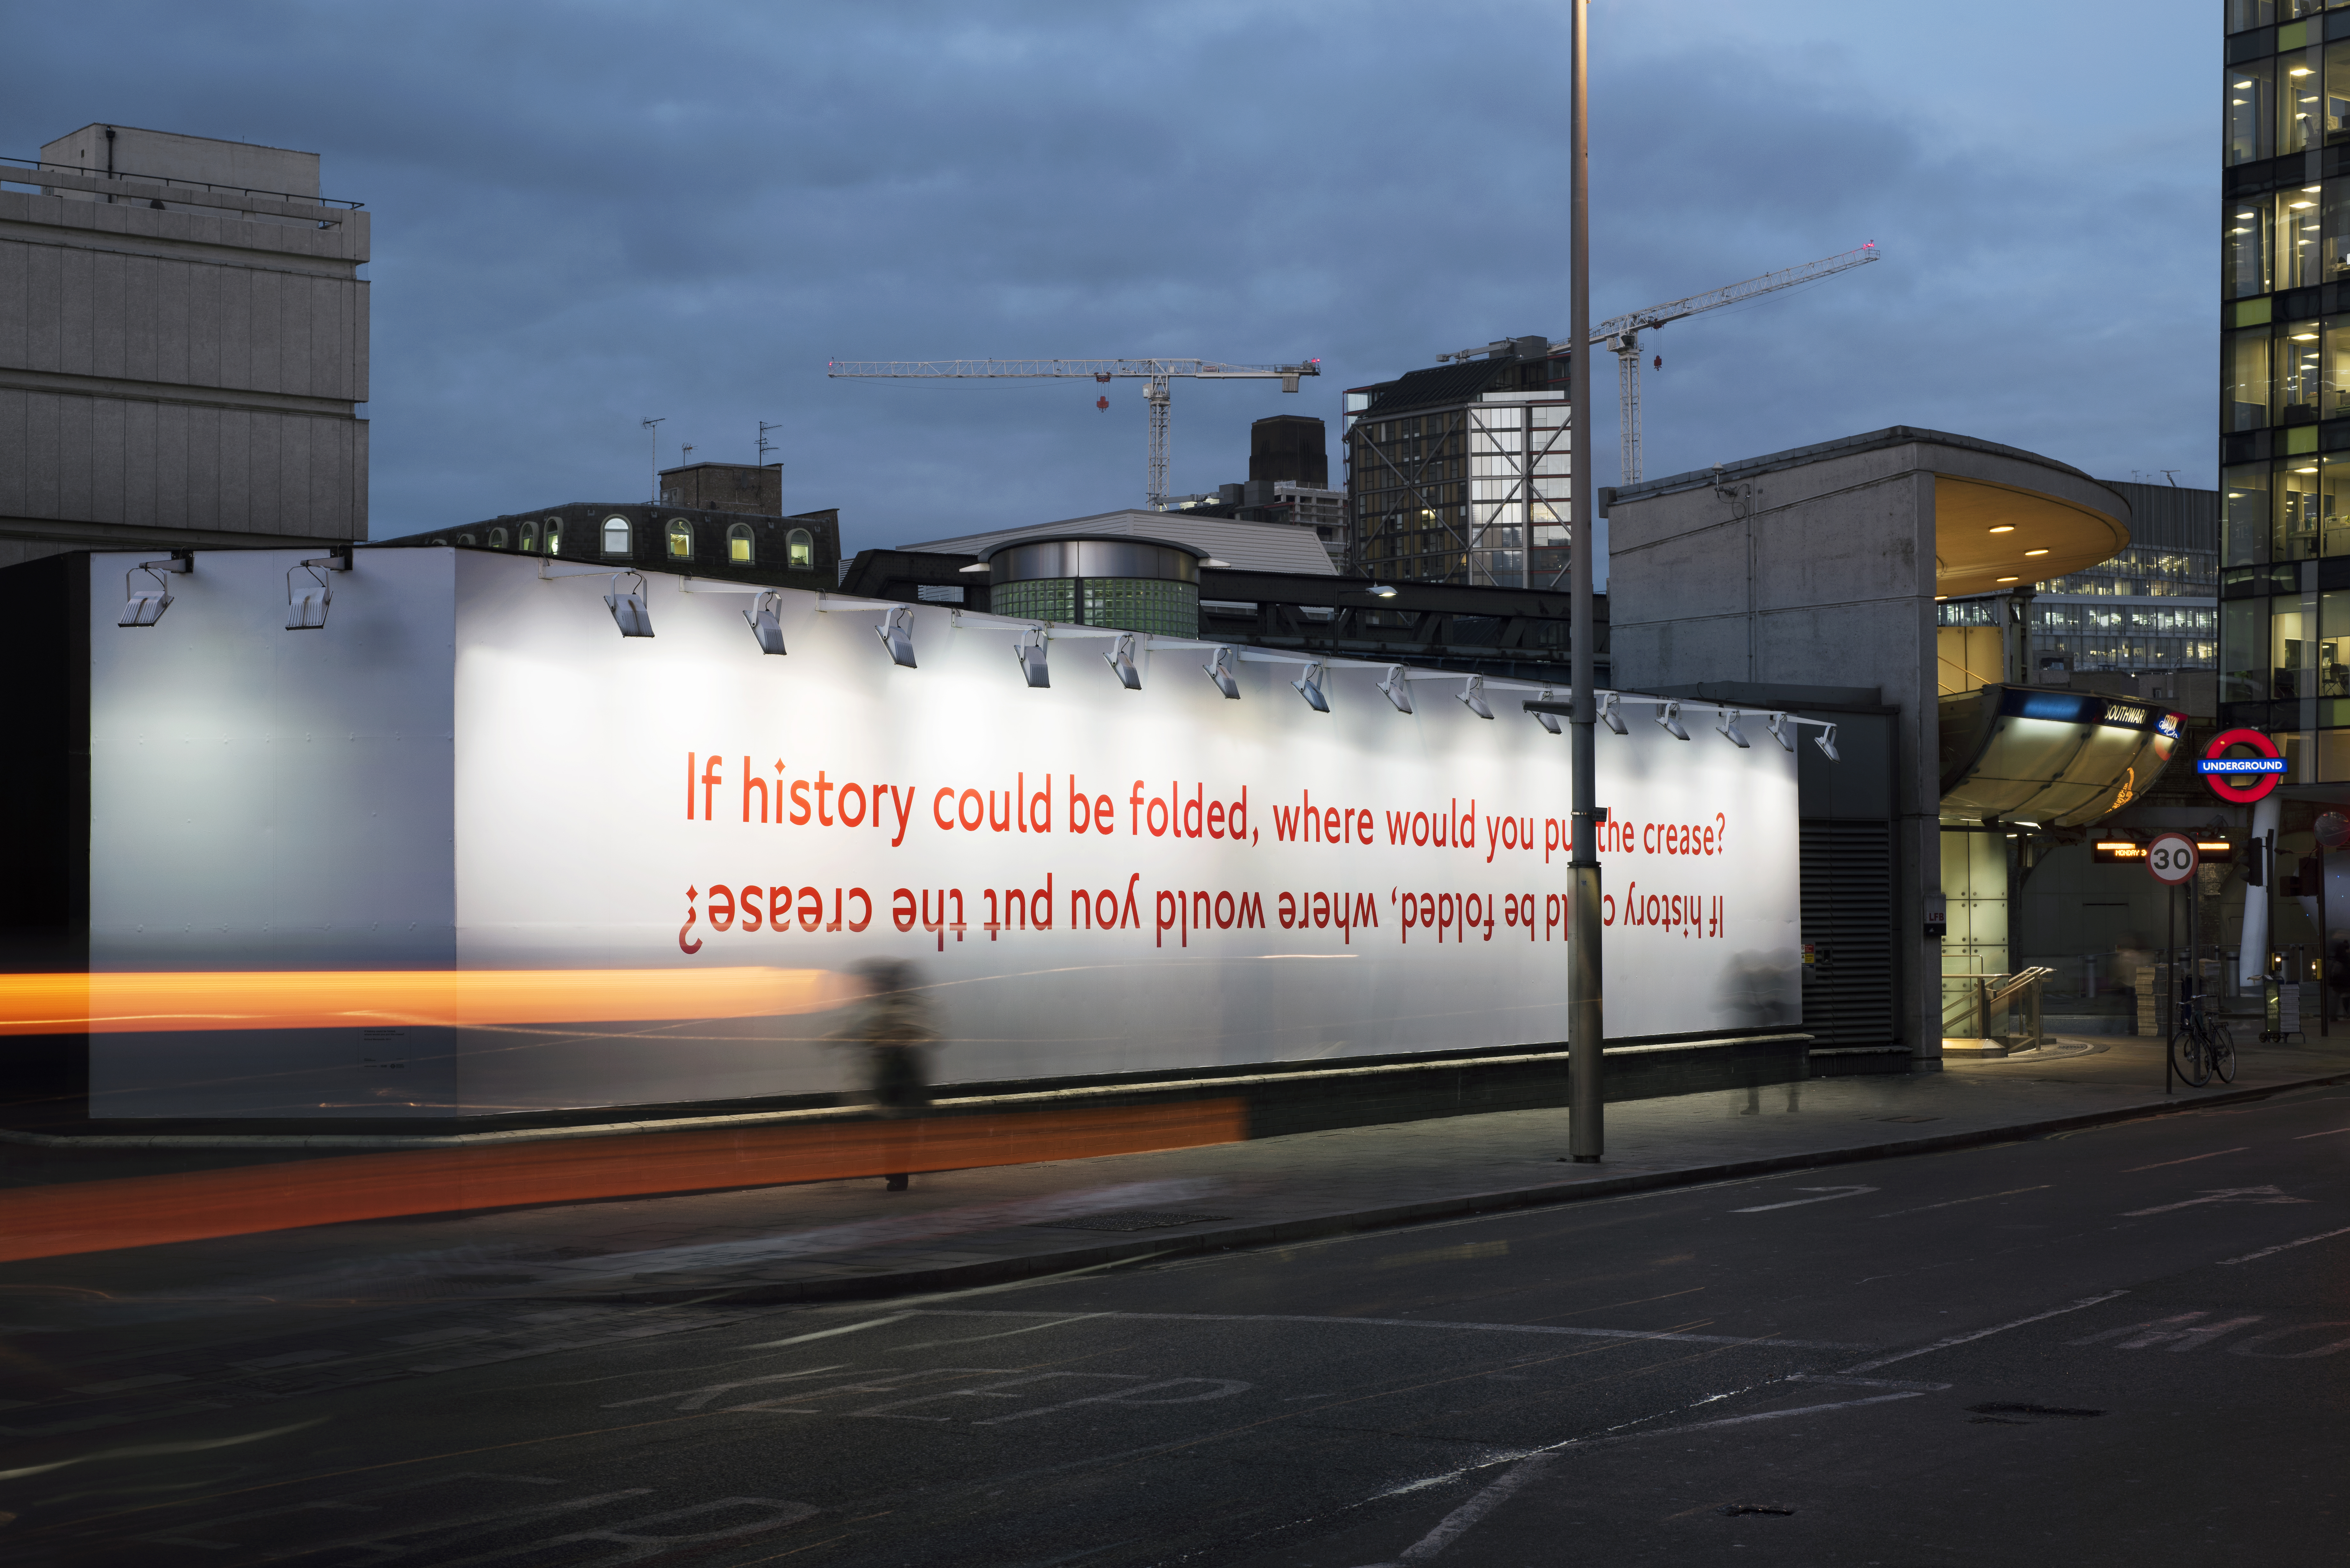 If history could be folded, where would you put the crease?, Richard Wentworh, 2014